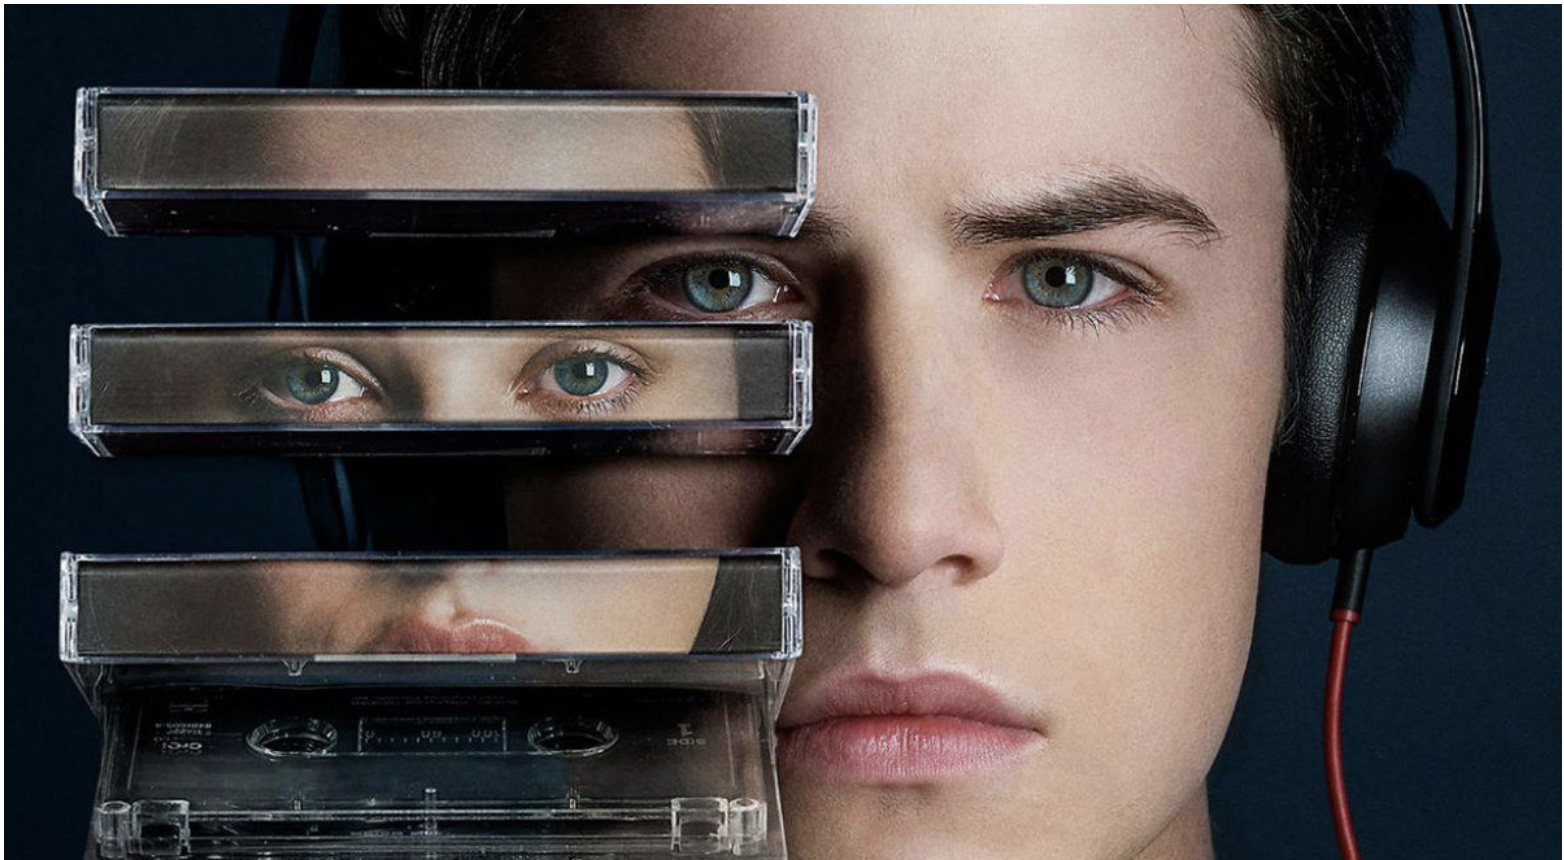 - This past week, the Parents Television Council issued a letter to Netflix CEO Reed Hastings asking the platform to justify why 13 Reasons Why is still streaming on Netflix even after the show was linked to an increase in youth suicide.